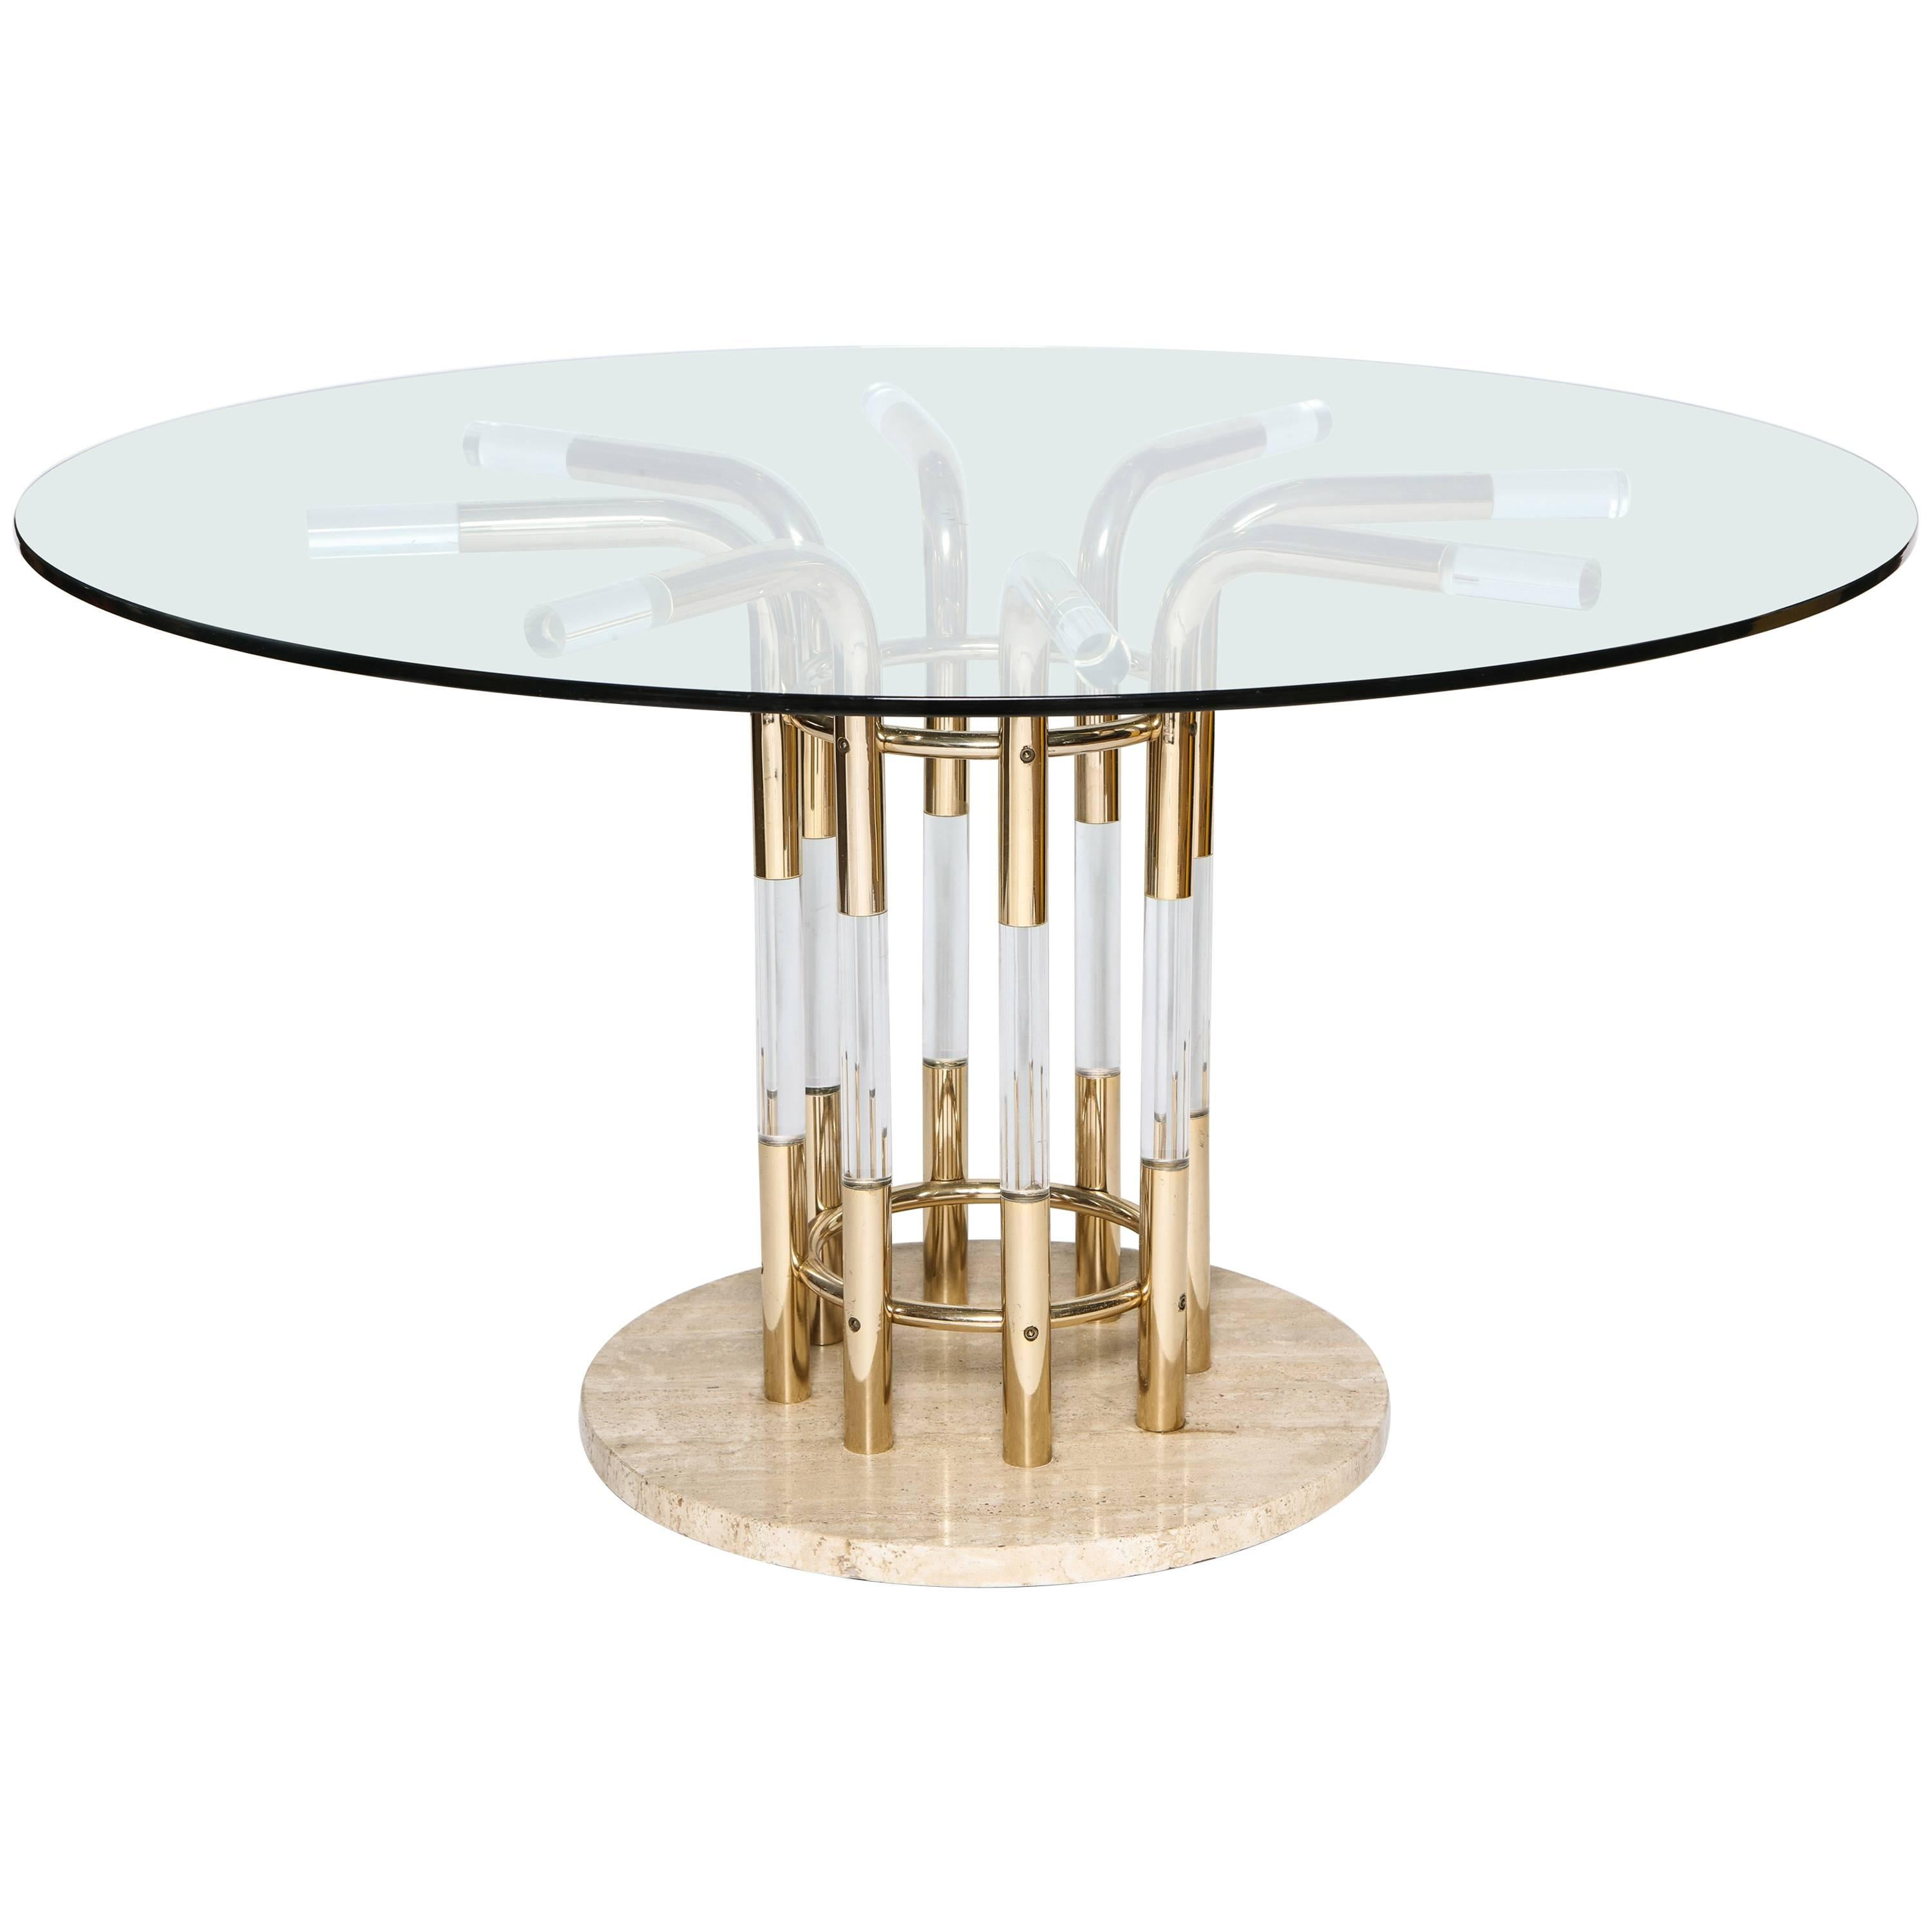 Vintage Lucite Marble and Brass Centre or Dining Table, France, 1970s